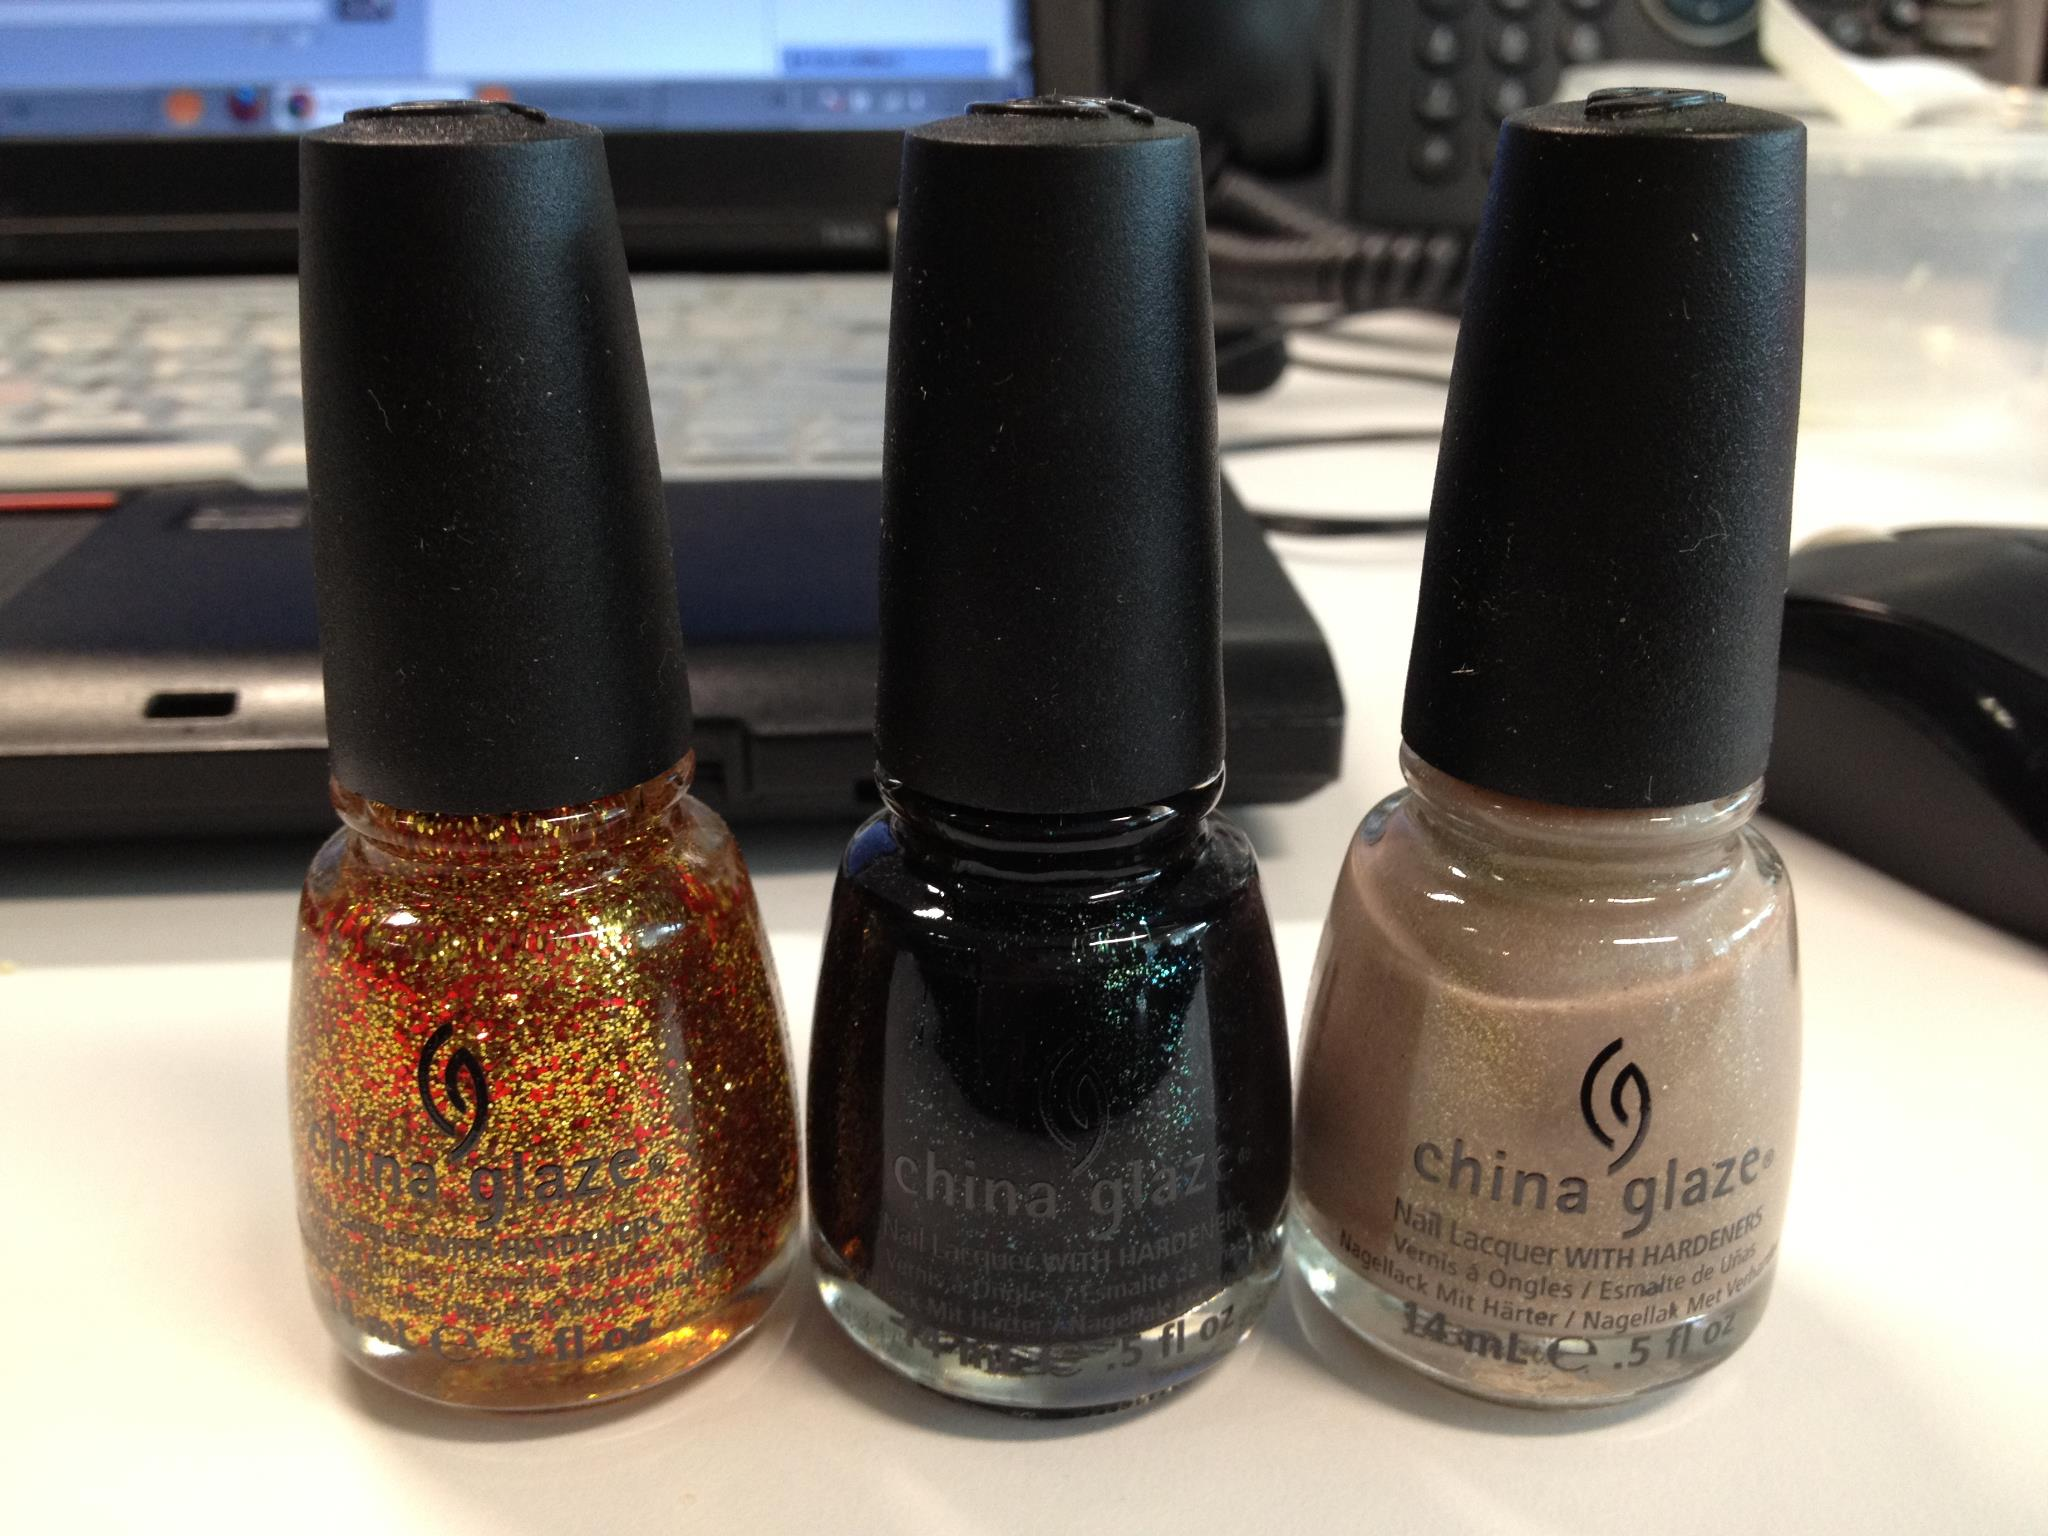 China Glaze Capitol Colors. L-R: Electrify, Smoke and Ashes, Fast Track